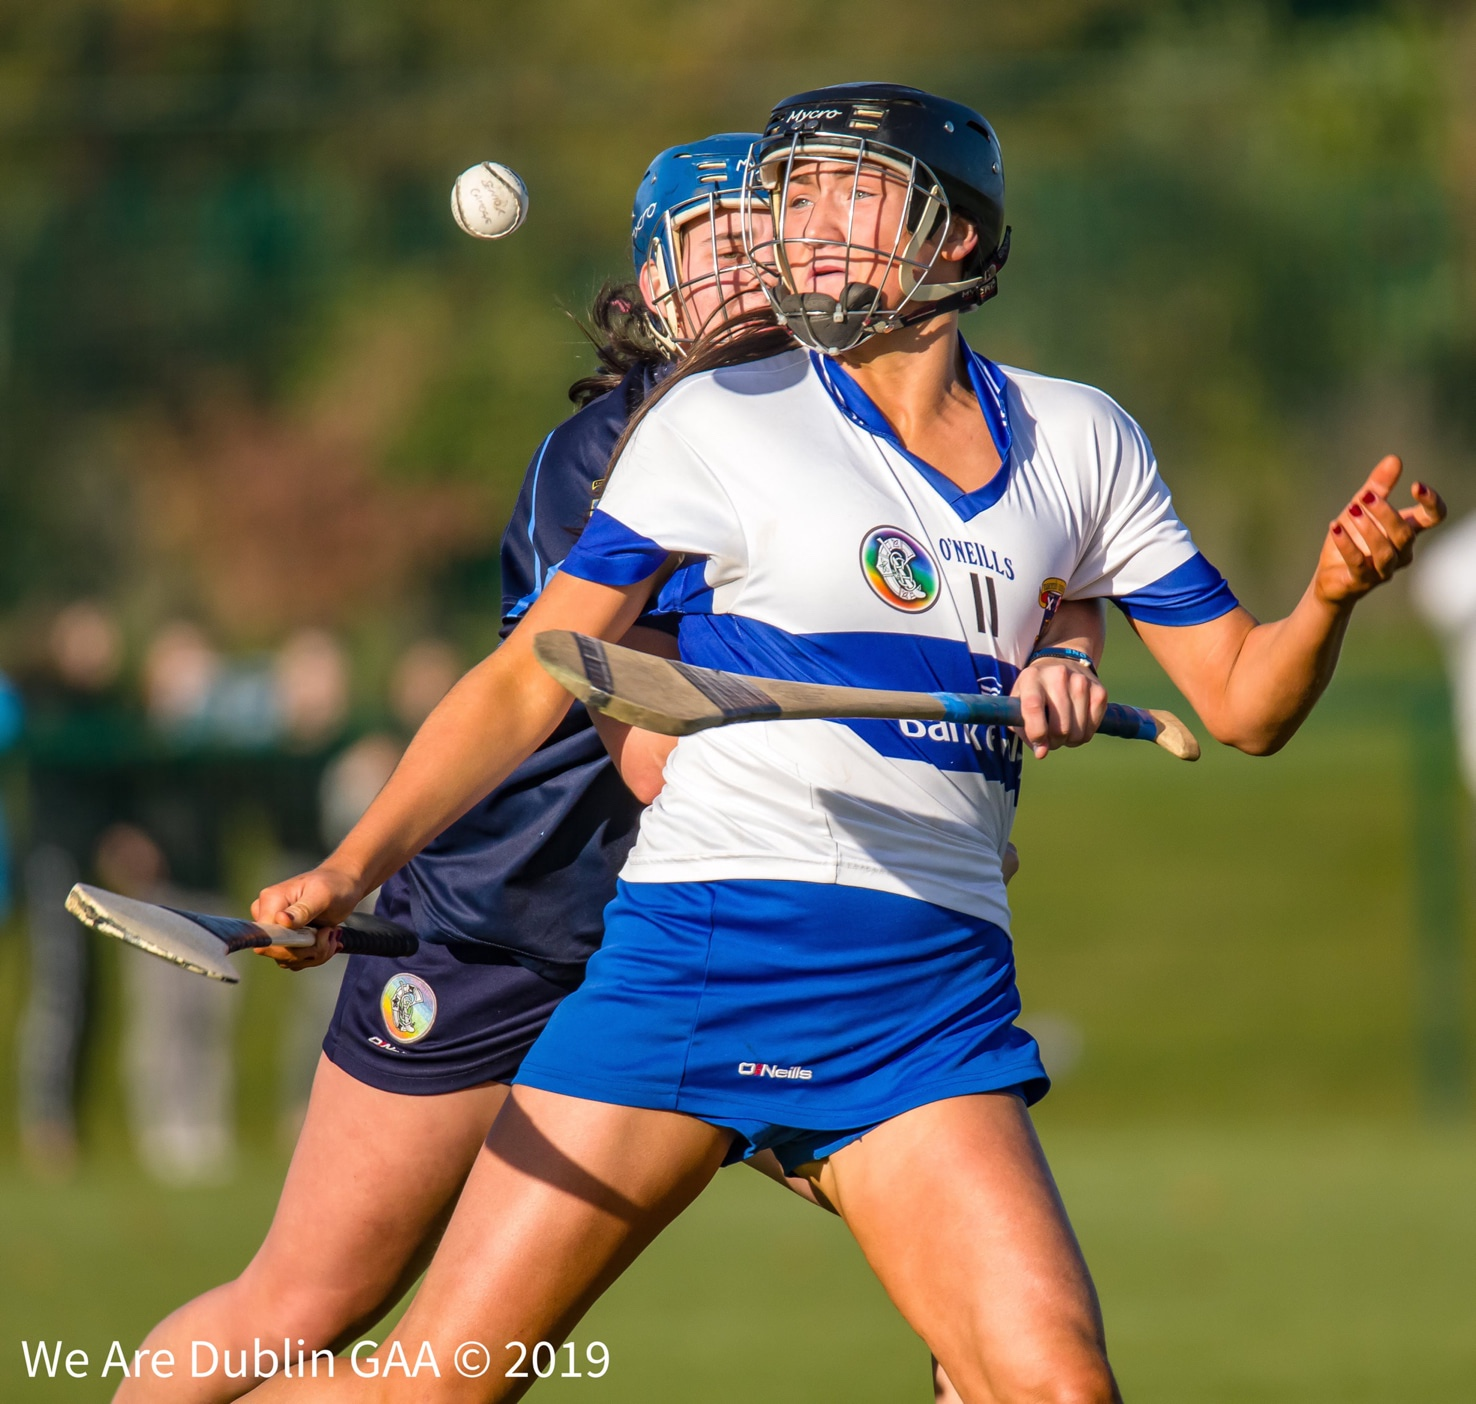 St Vincents camogie star Niamh Hetherton in action during the Dublin club championship final, Niamh has been named on the AIB All Ireland Senior Club Championship Team and won the Provincial Club Player of the year award